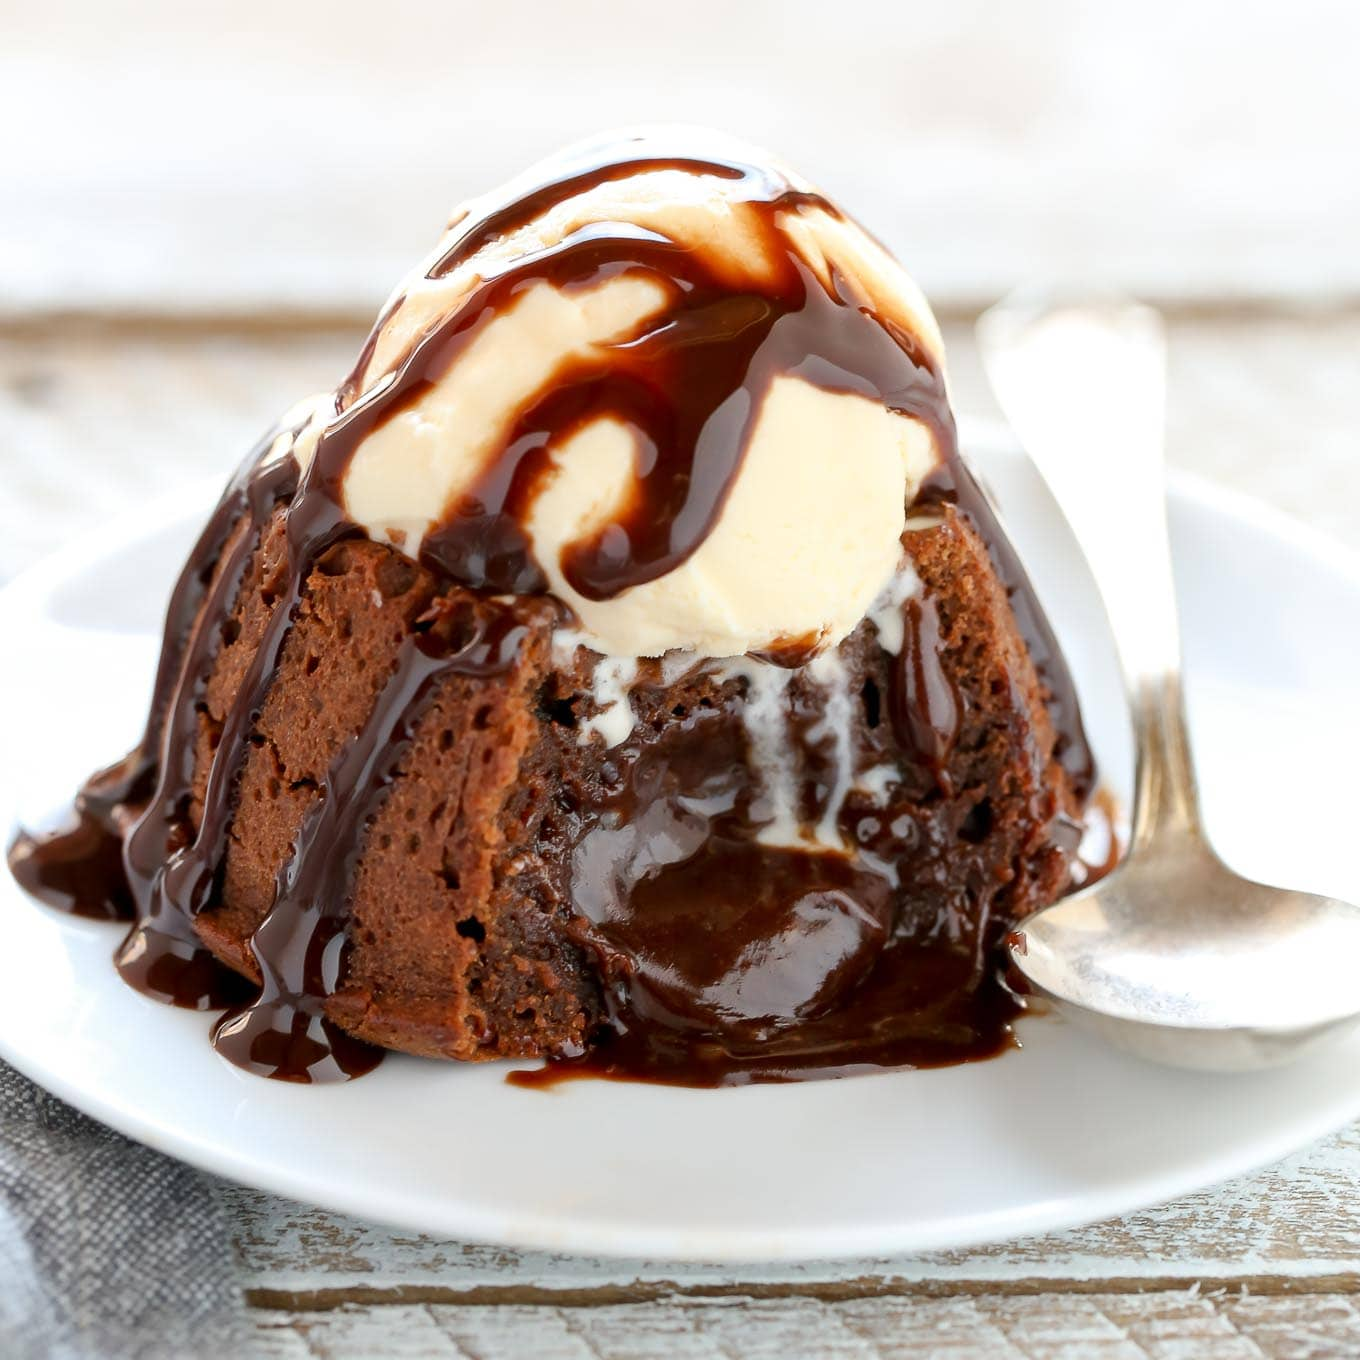 Bakers Chocolate Molten Lava Cake